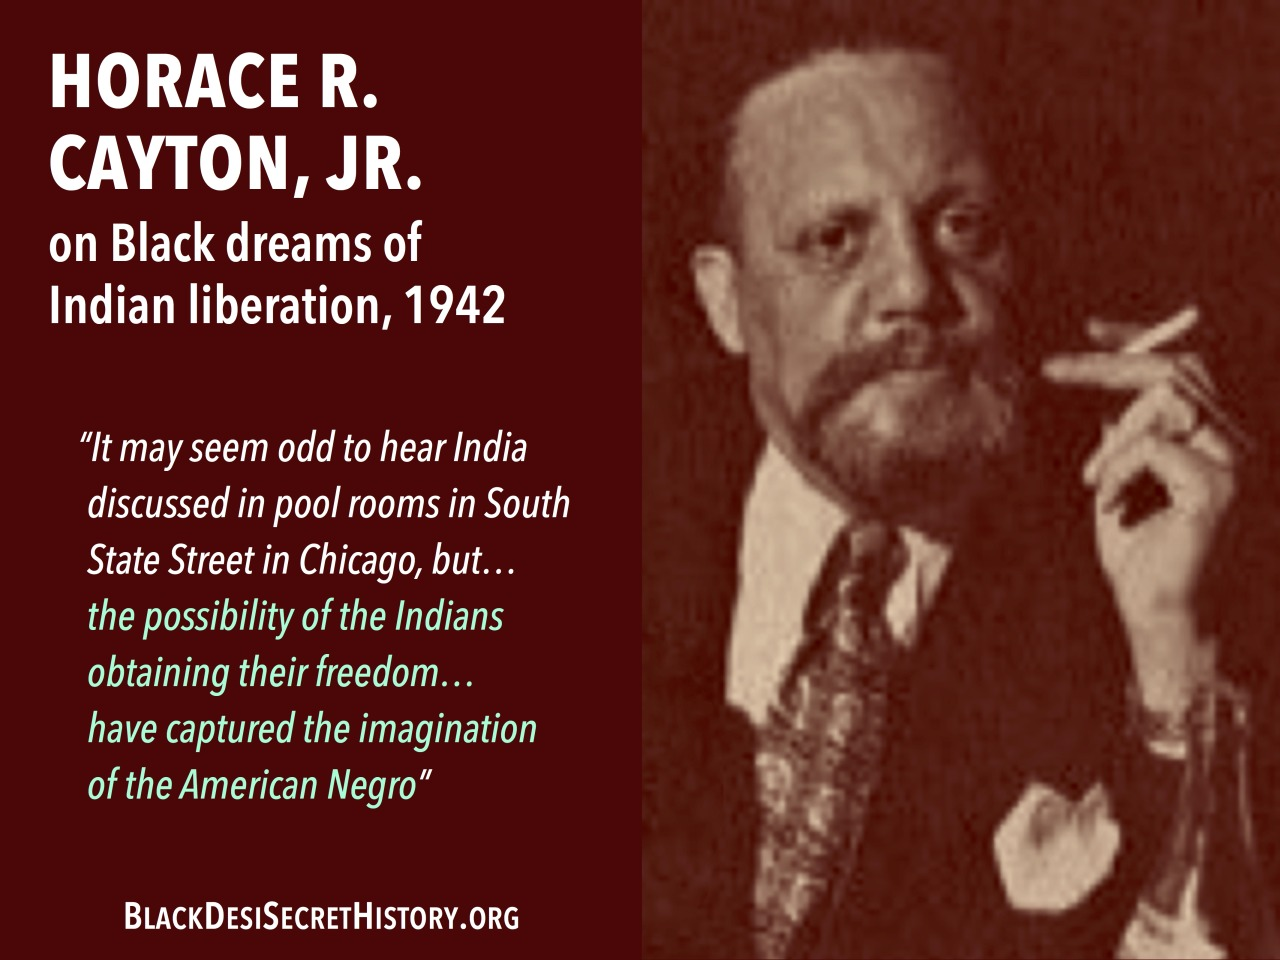 HORACE R. CAYTON, JR.